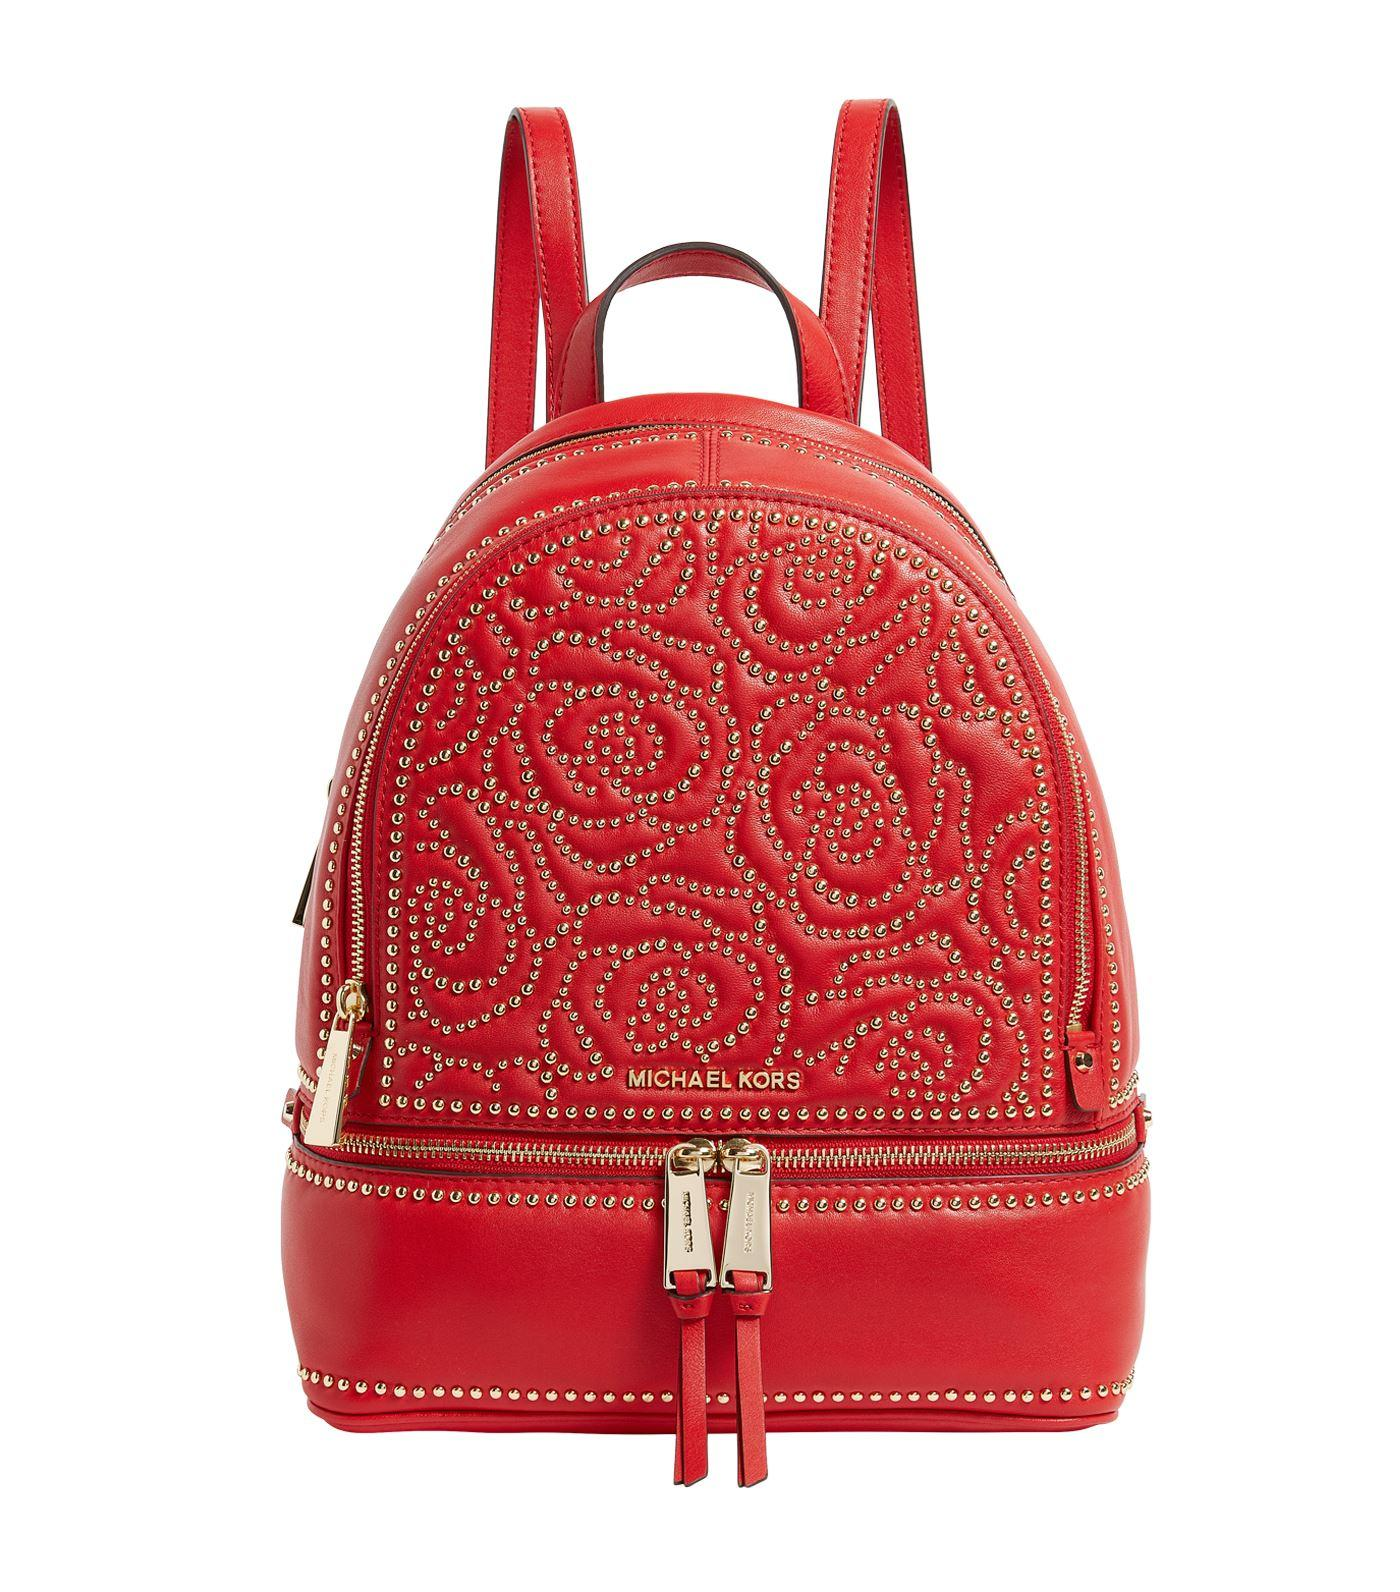 8a4117f9a65 Lyst - MICHAEL Michael Kors Medium Studded Rhea Backpack in Red